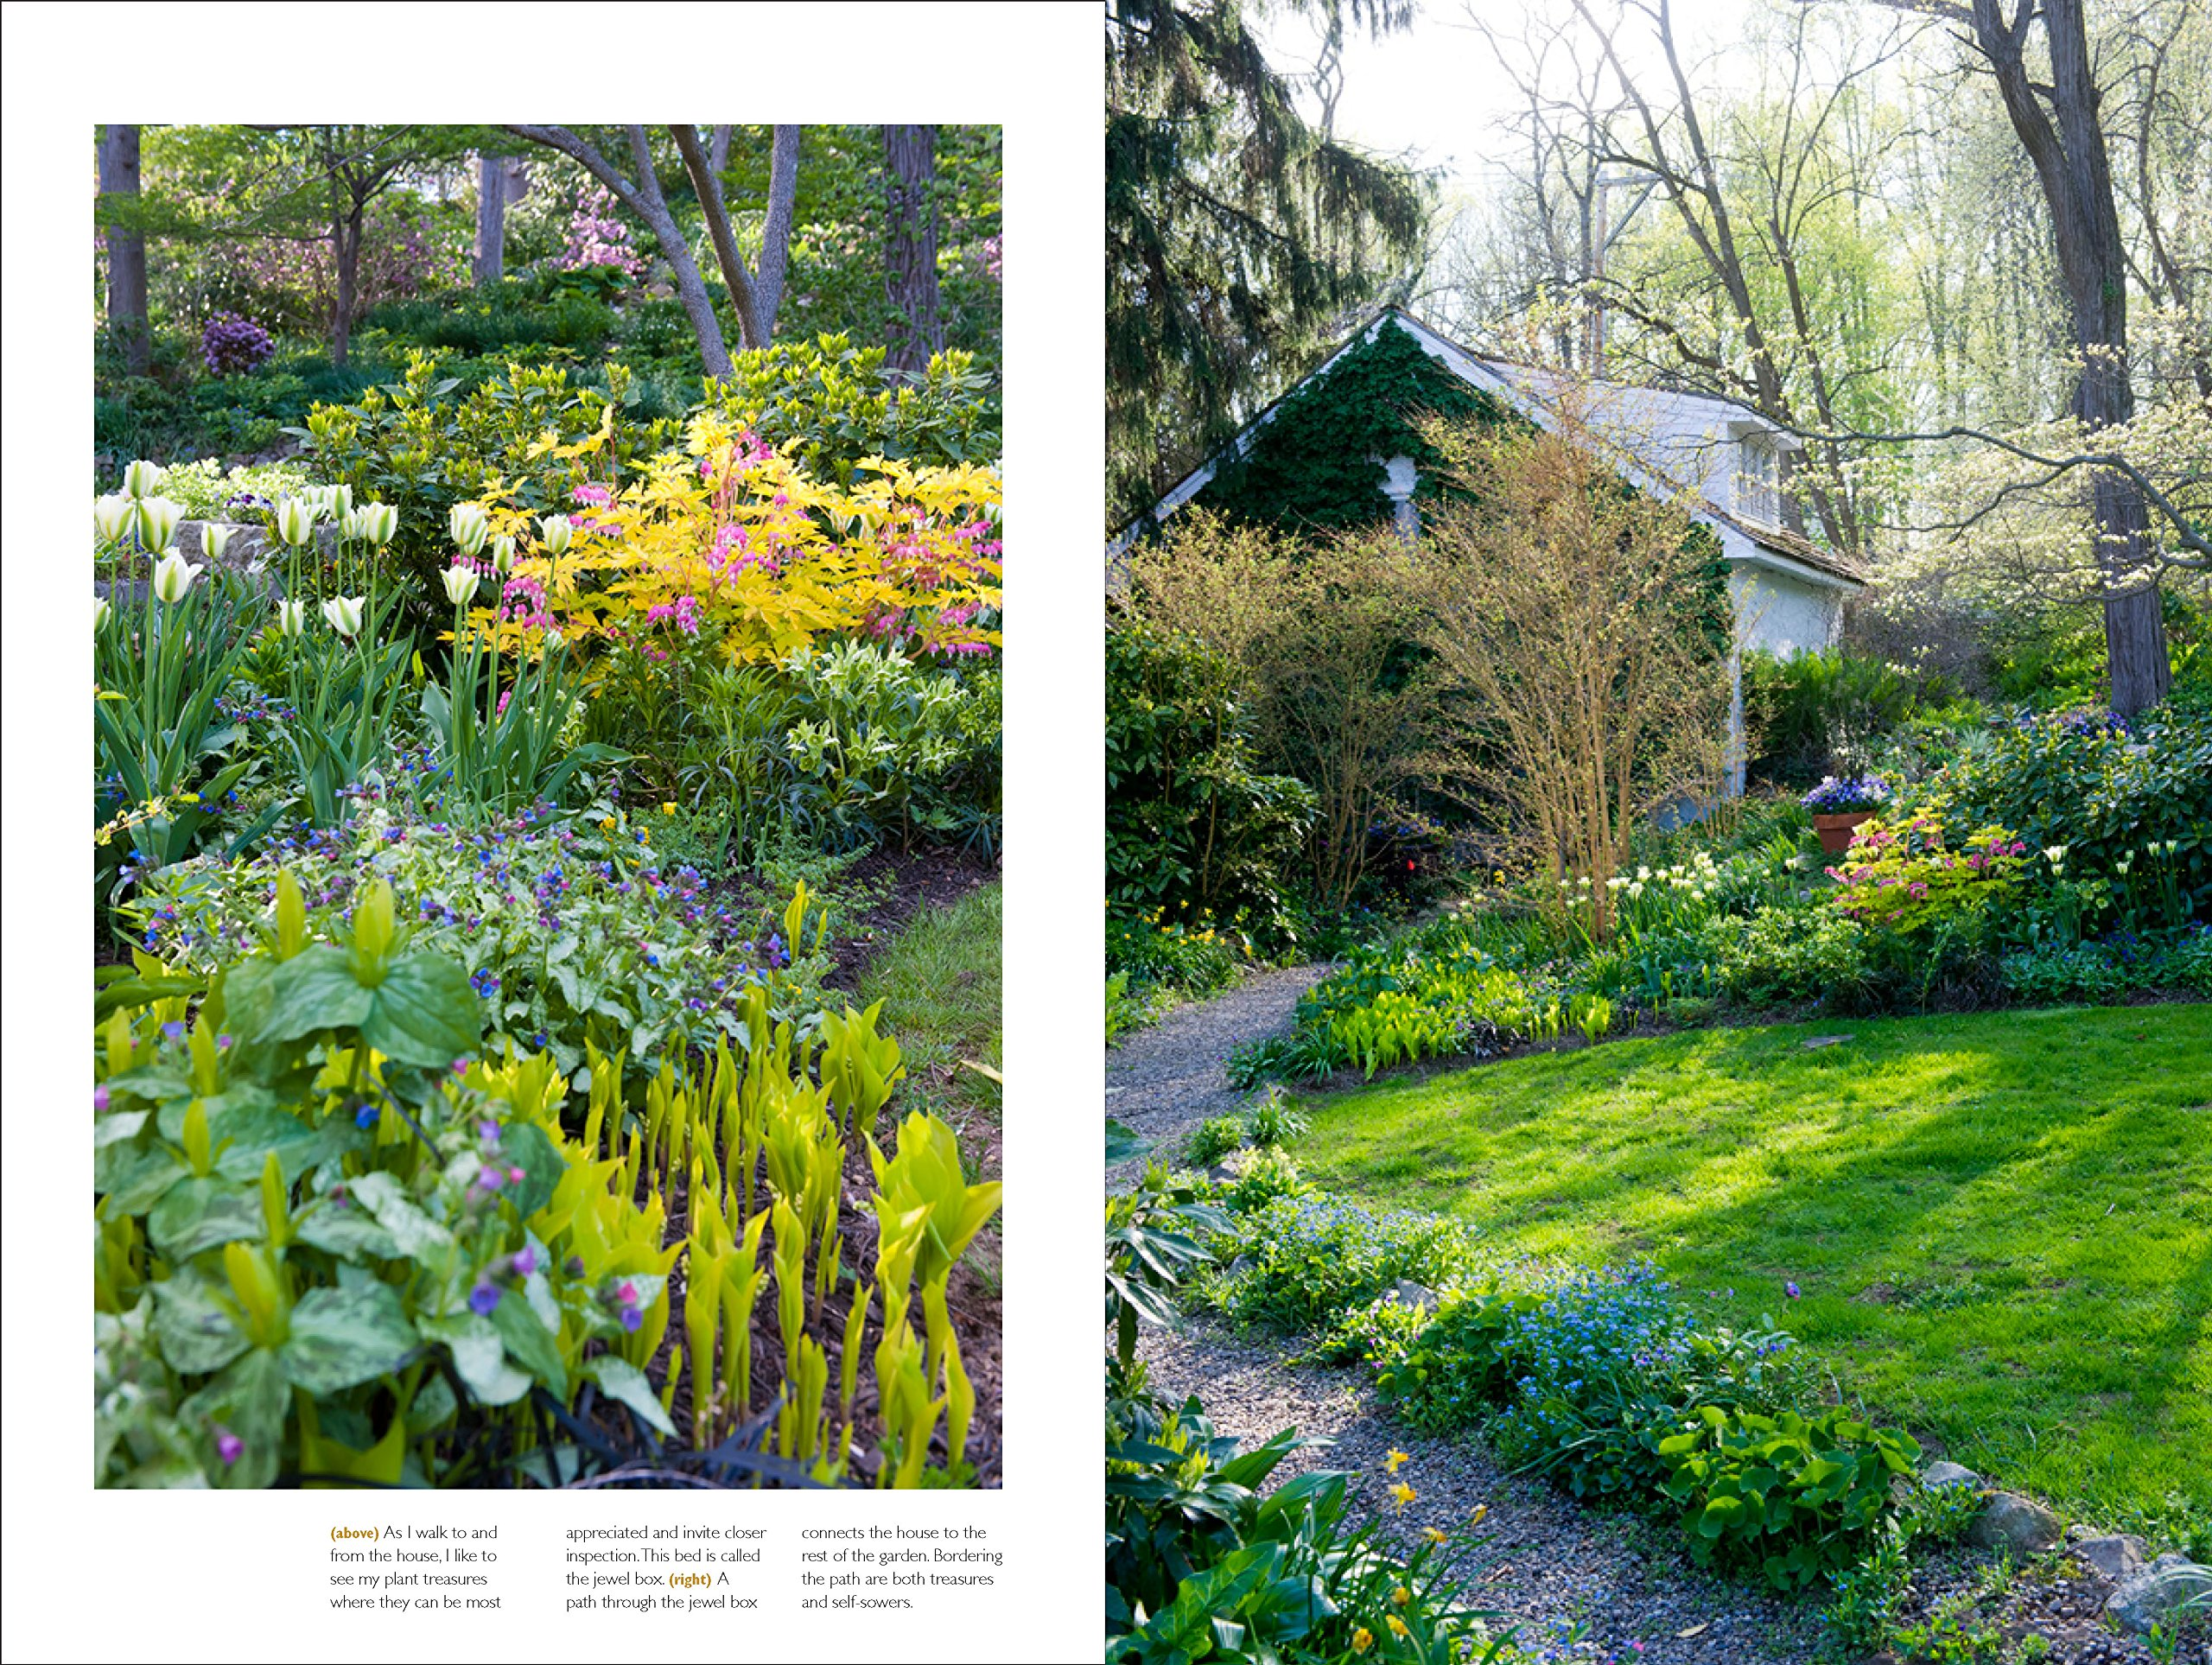 Kitchen Garden Magazine Subscription The Layered Garden Design Lessons For Year Round Beauty From